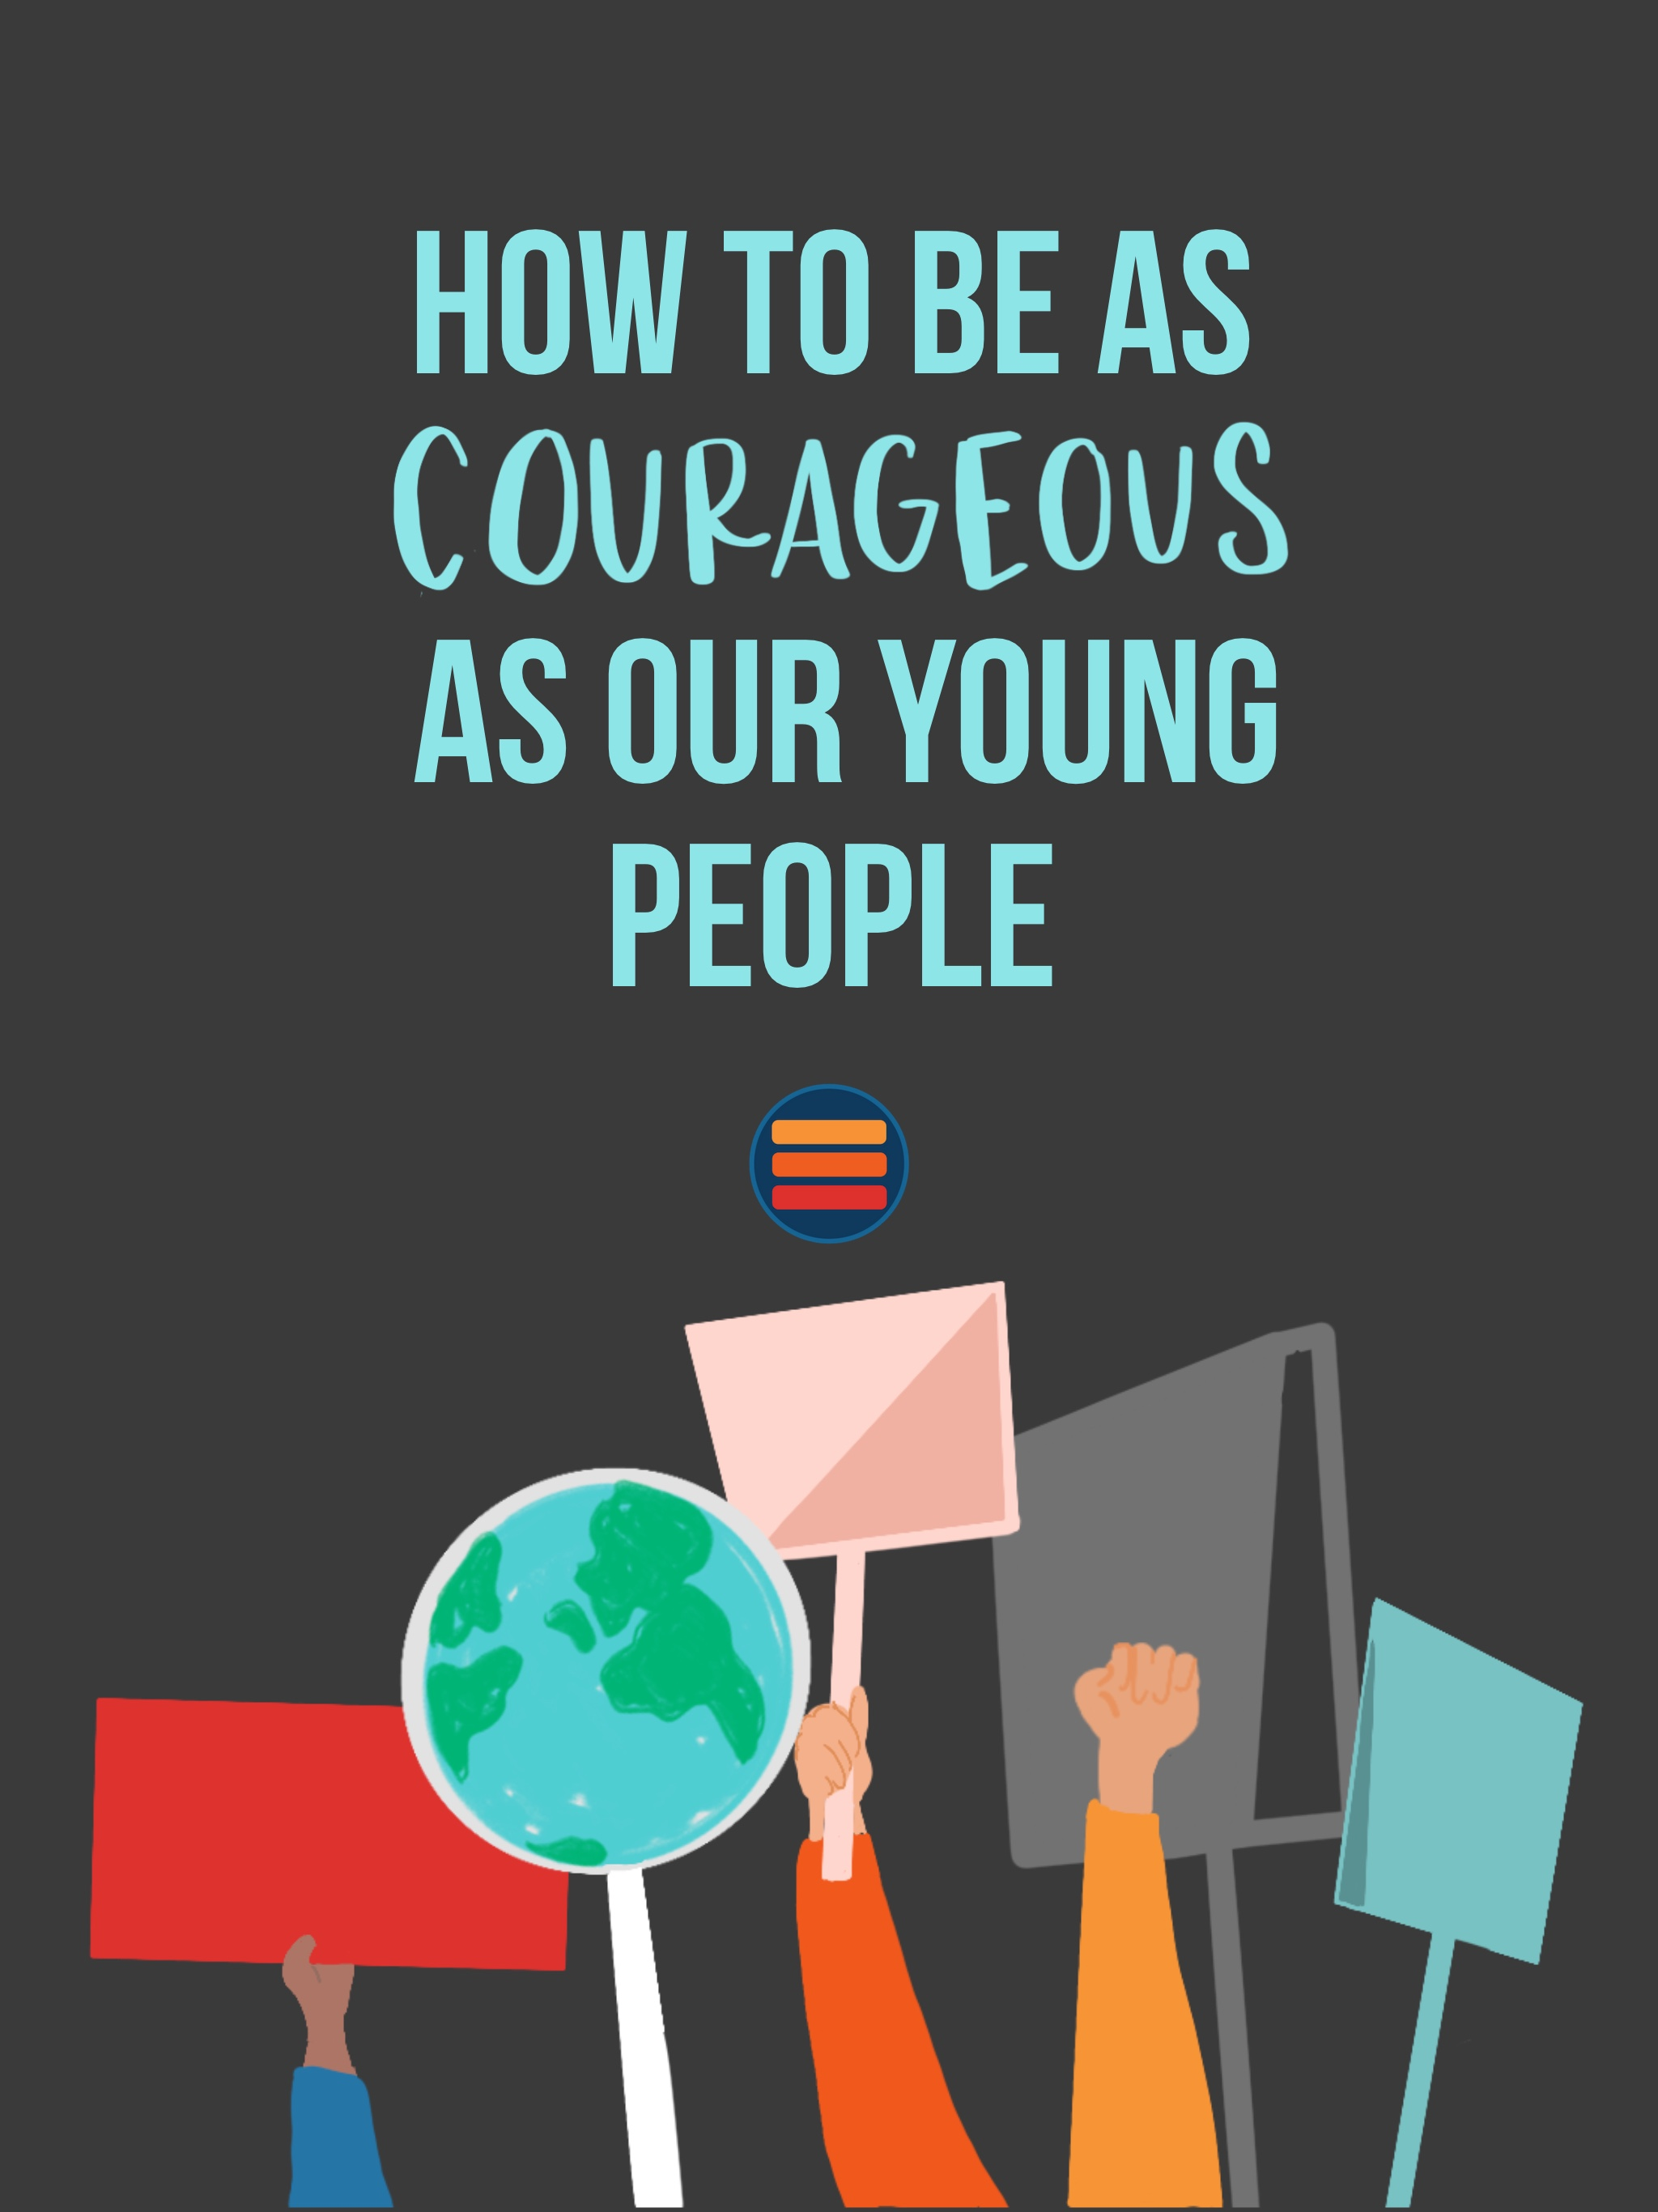 How To Be As Courageous As Our Young People